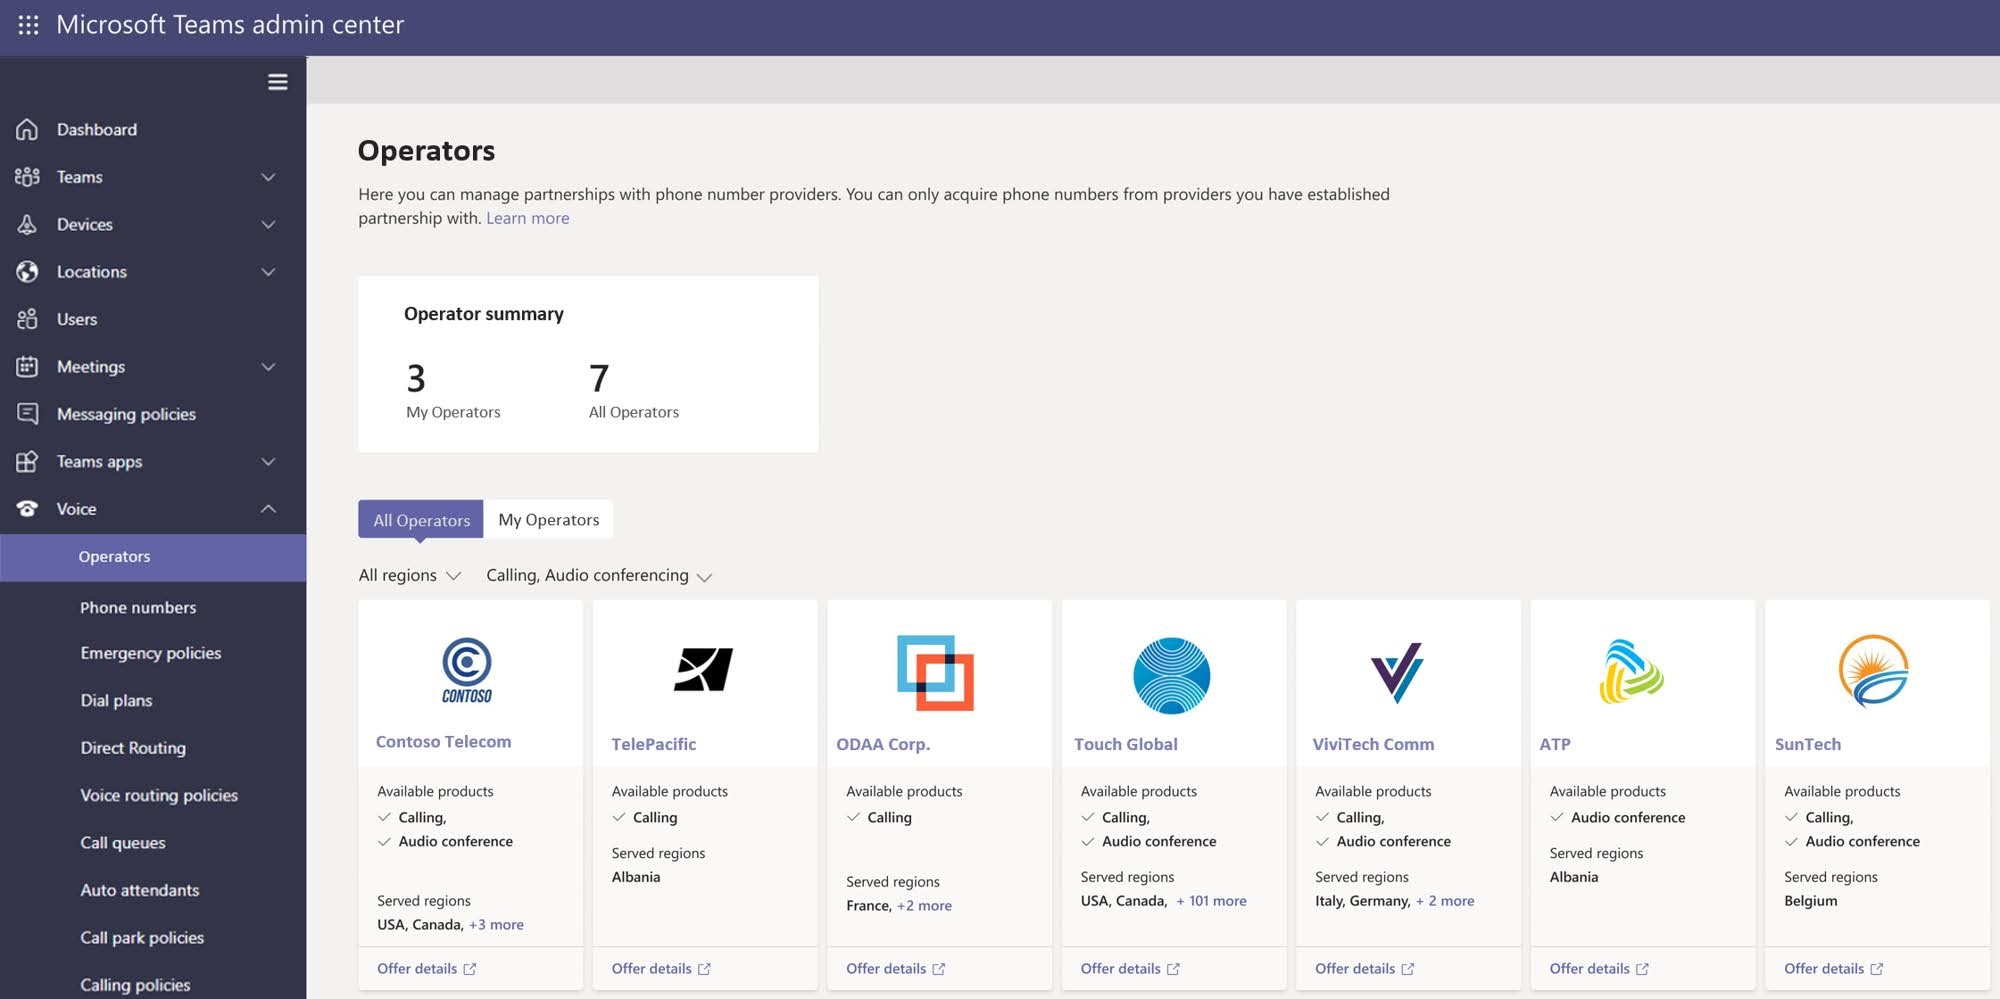 From the Voice section in Teams Admin Center, a new Operators section will be available to enable Teams administrators to select the operator of their choice from one to multiple countries.